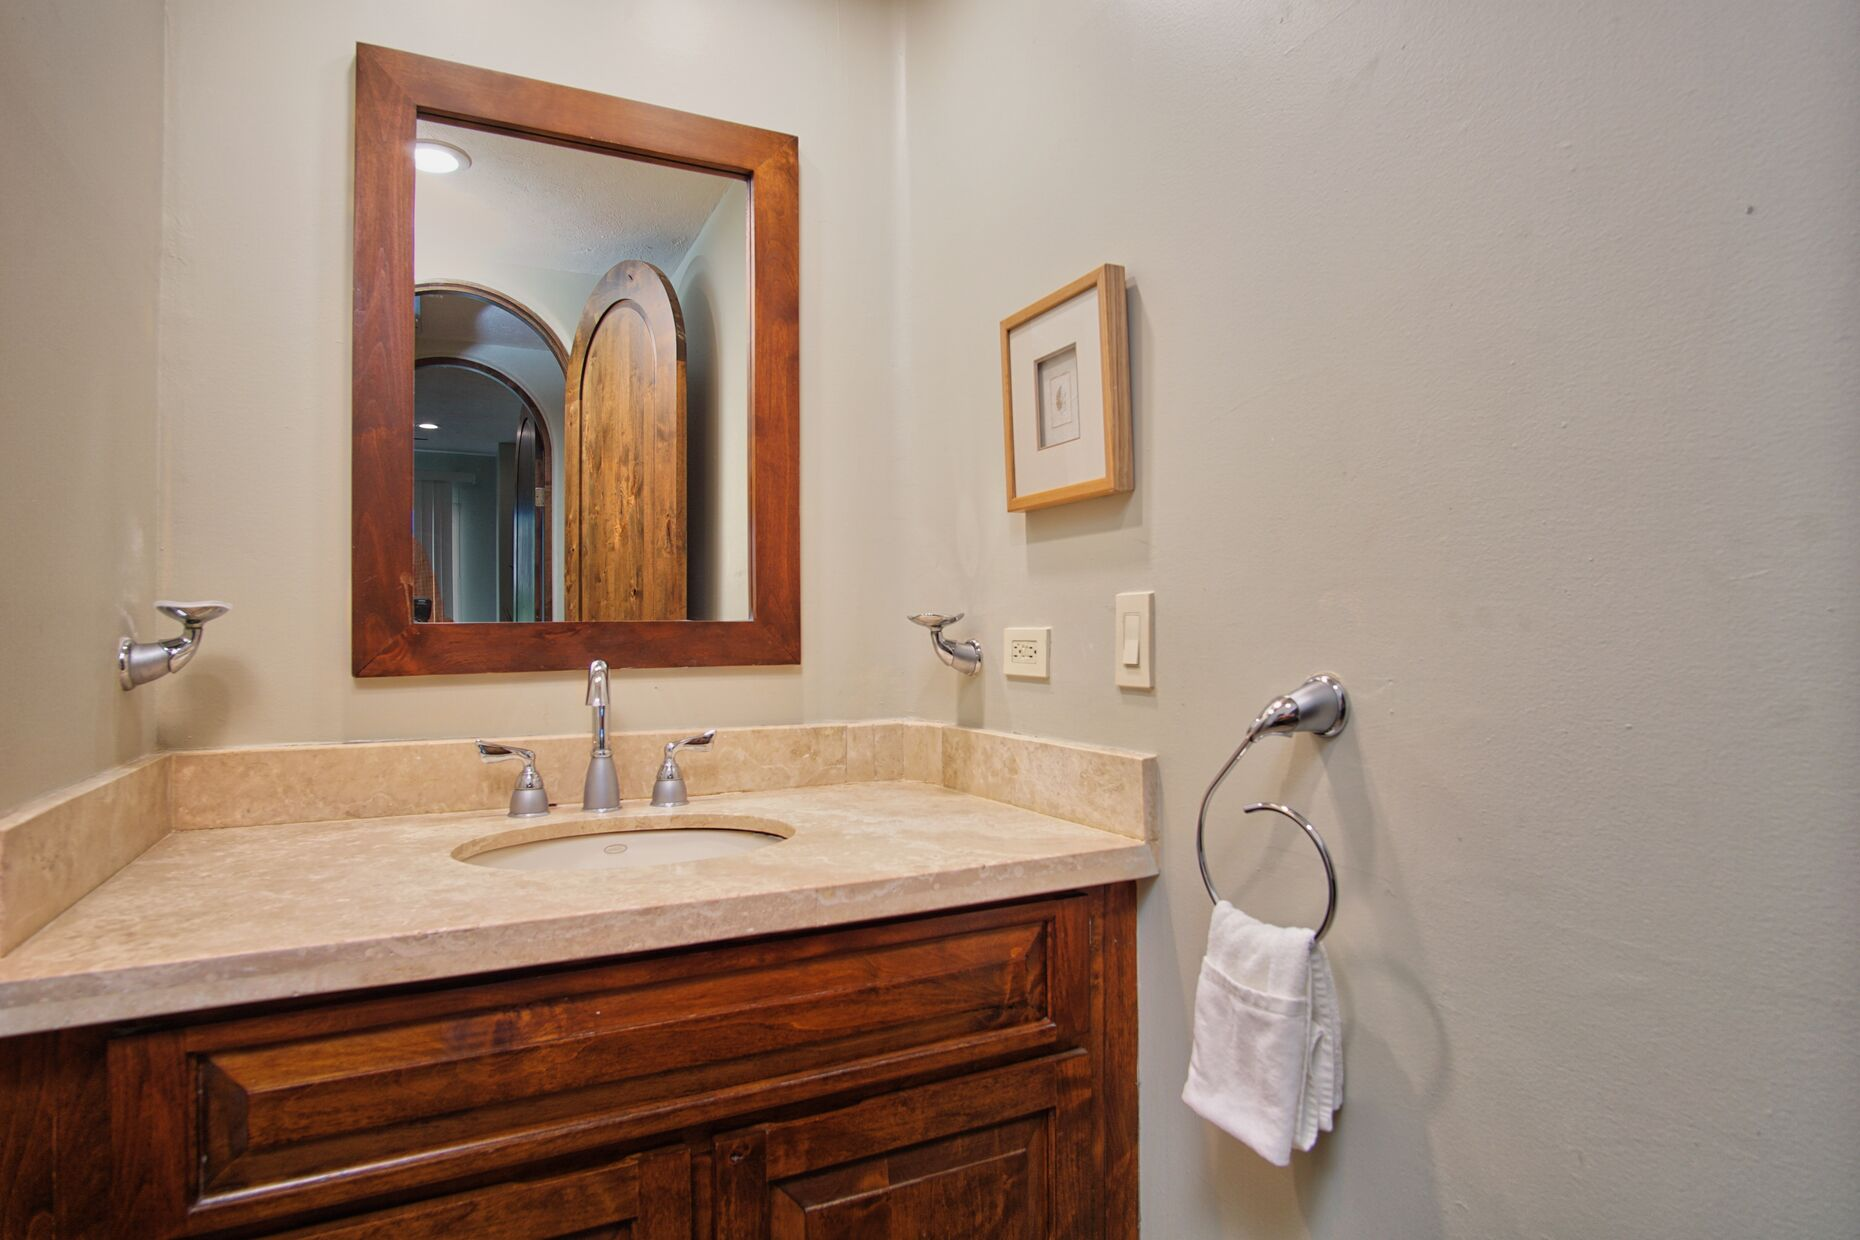 Guest bathroom with shower and vanity sink